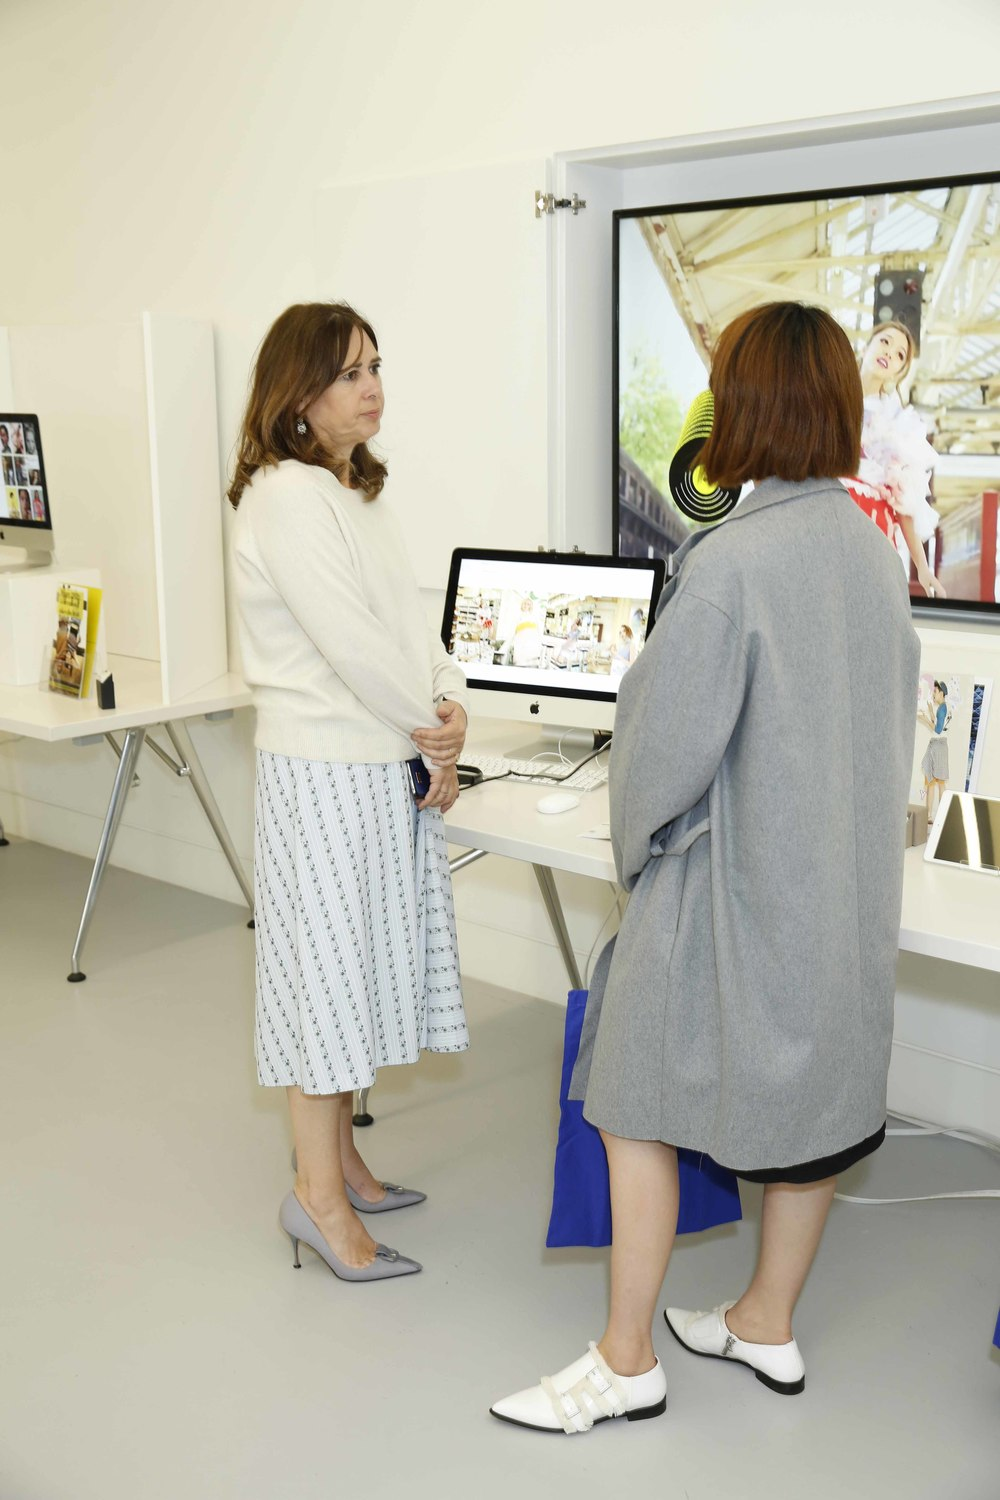 Alexandra Shulman, the editor-in-chief of British Vogue viewing my project